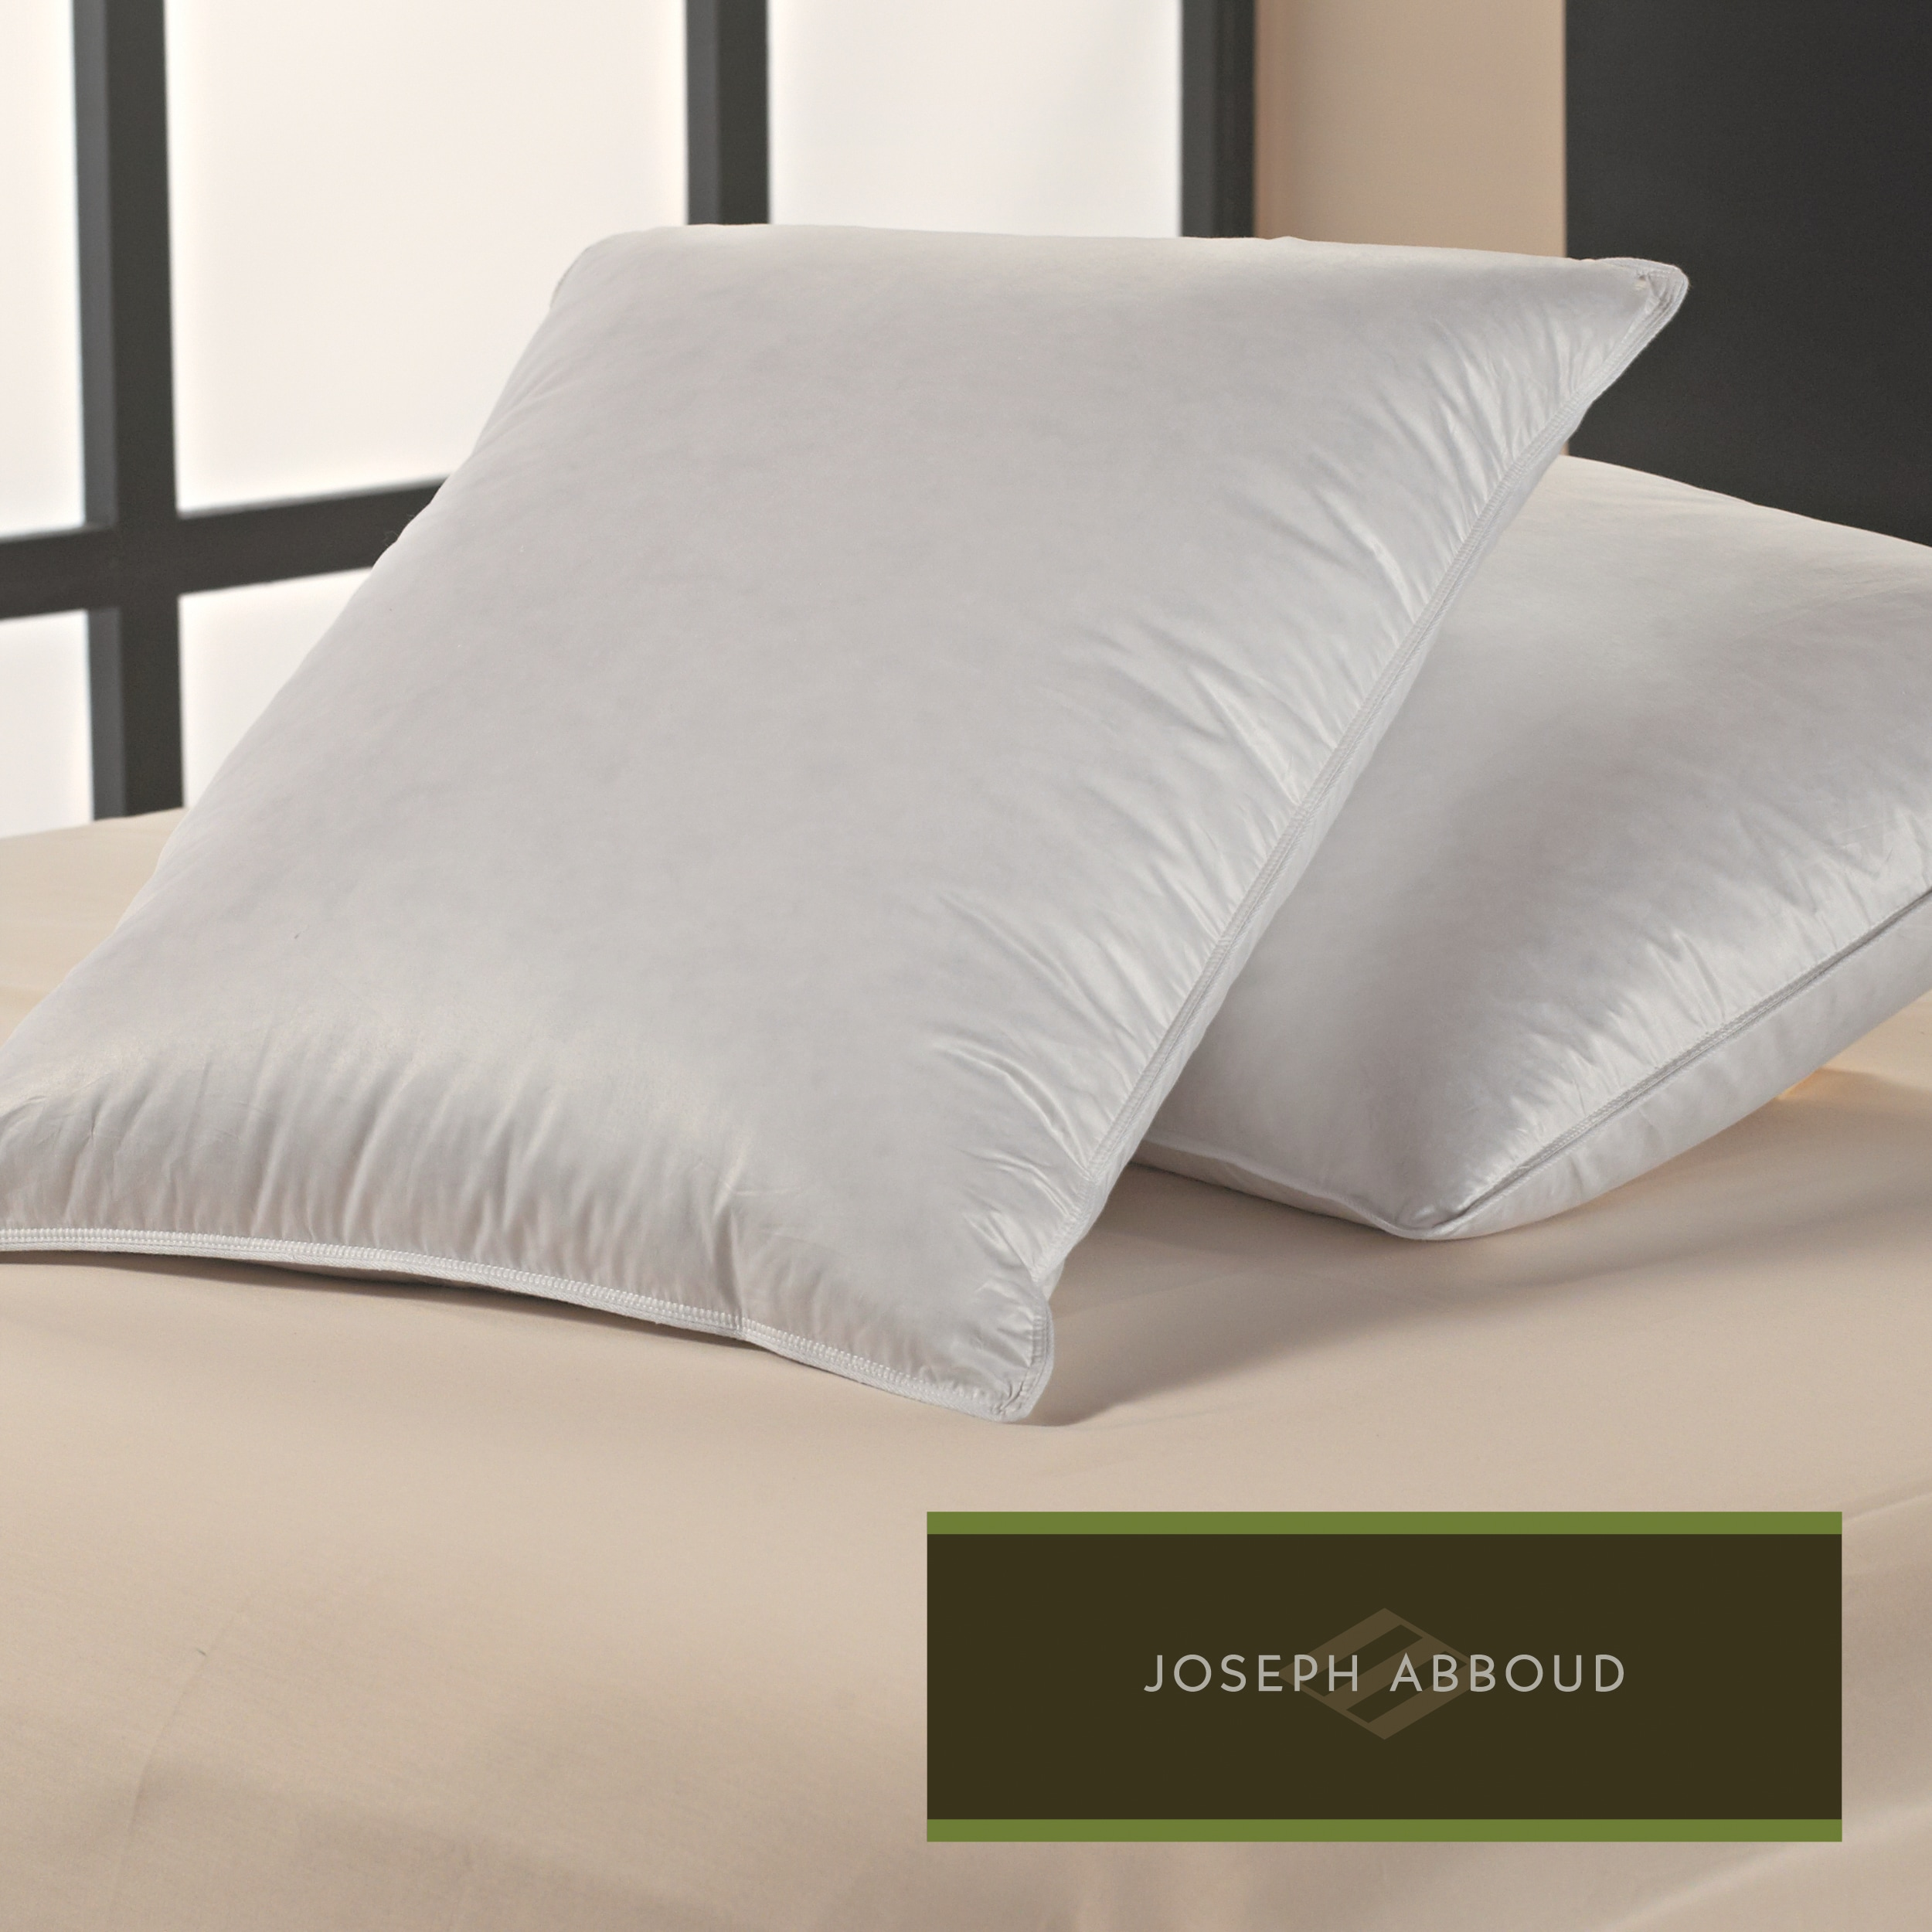 Overstock.com Joseph Abboud 300 Thread Count Luxury Comfort Pillows (Set of 2) at Sears.com